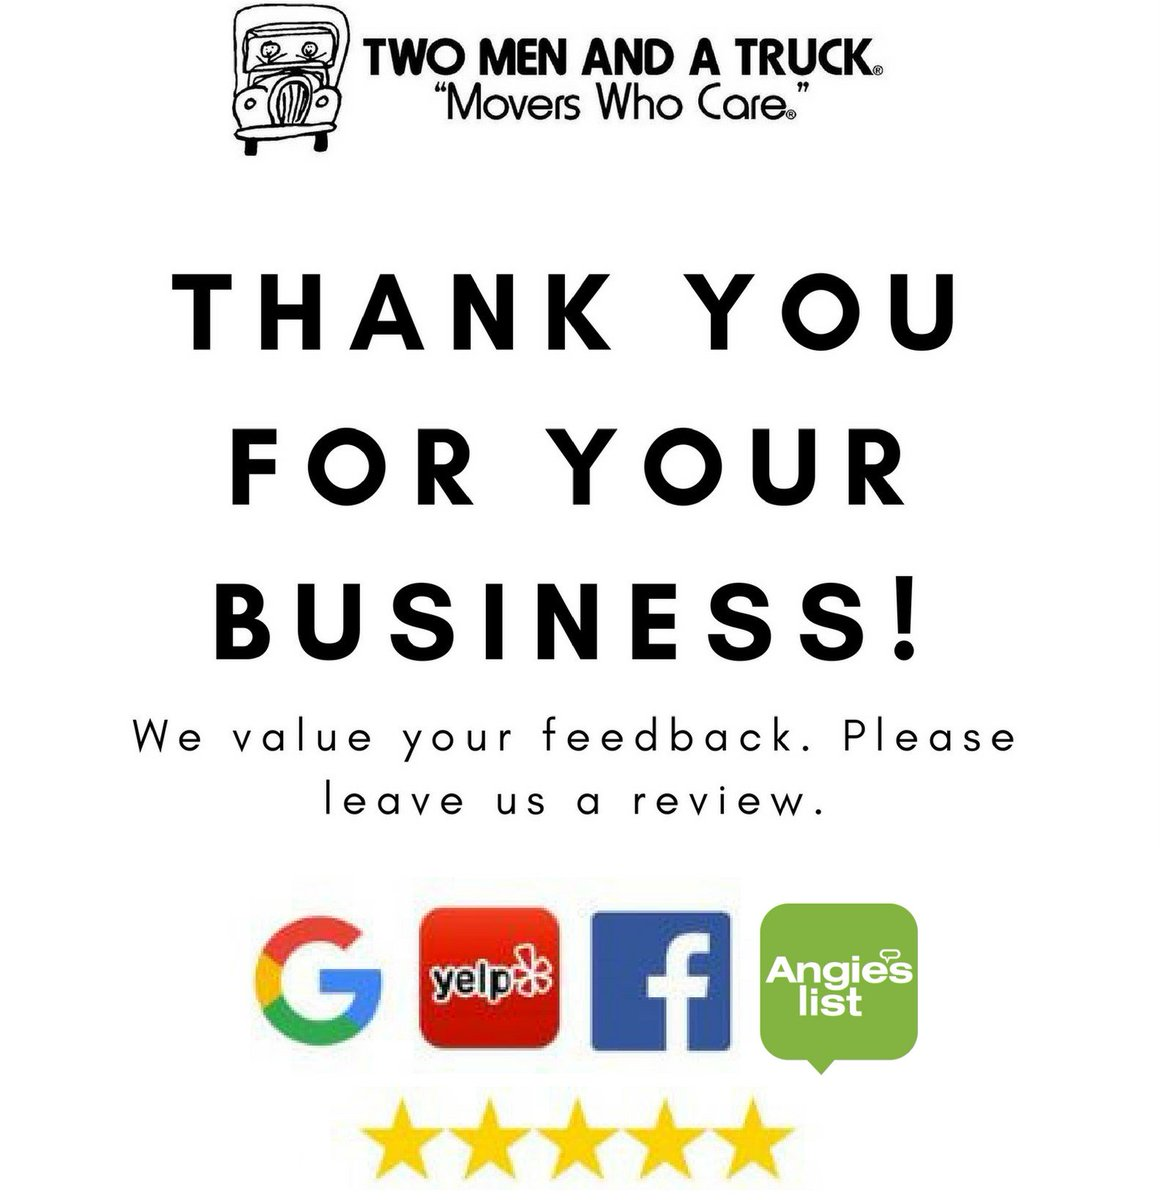 Prissy See Why We Have A Referral Two Men A Truck On Appreciate Your If You We Appreciate Your Business Synonym We Appreciate Your Business Message A Truck On Appreciate Your If Used Our Call Us Two M inspiration We Appreciate Your Business